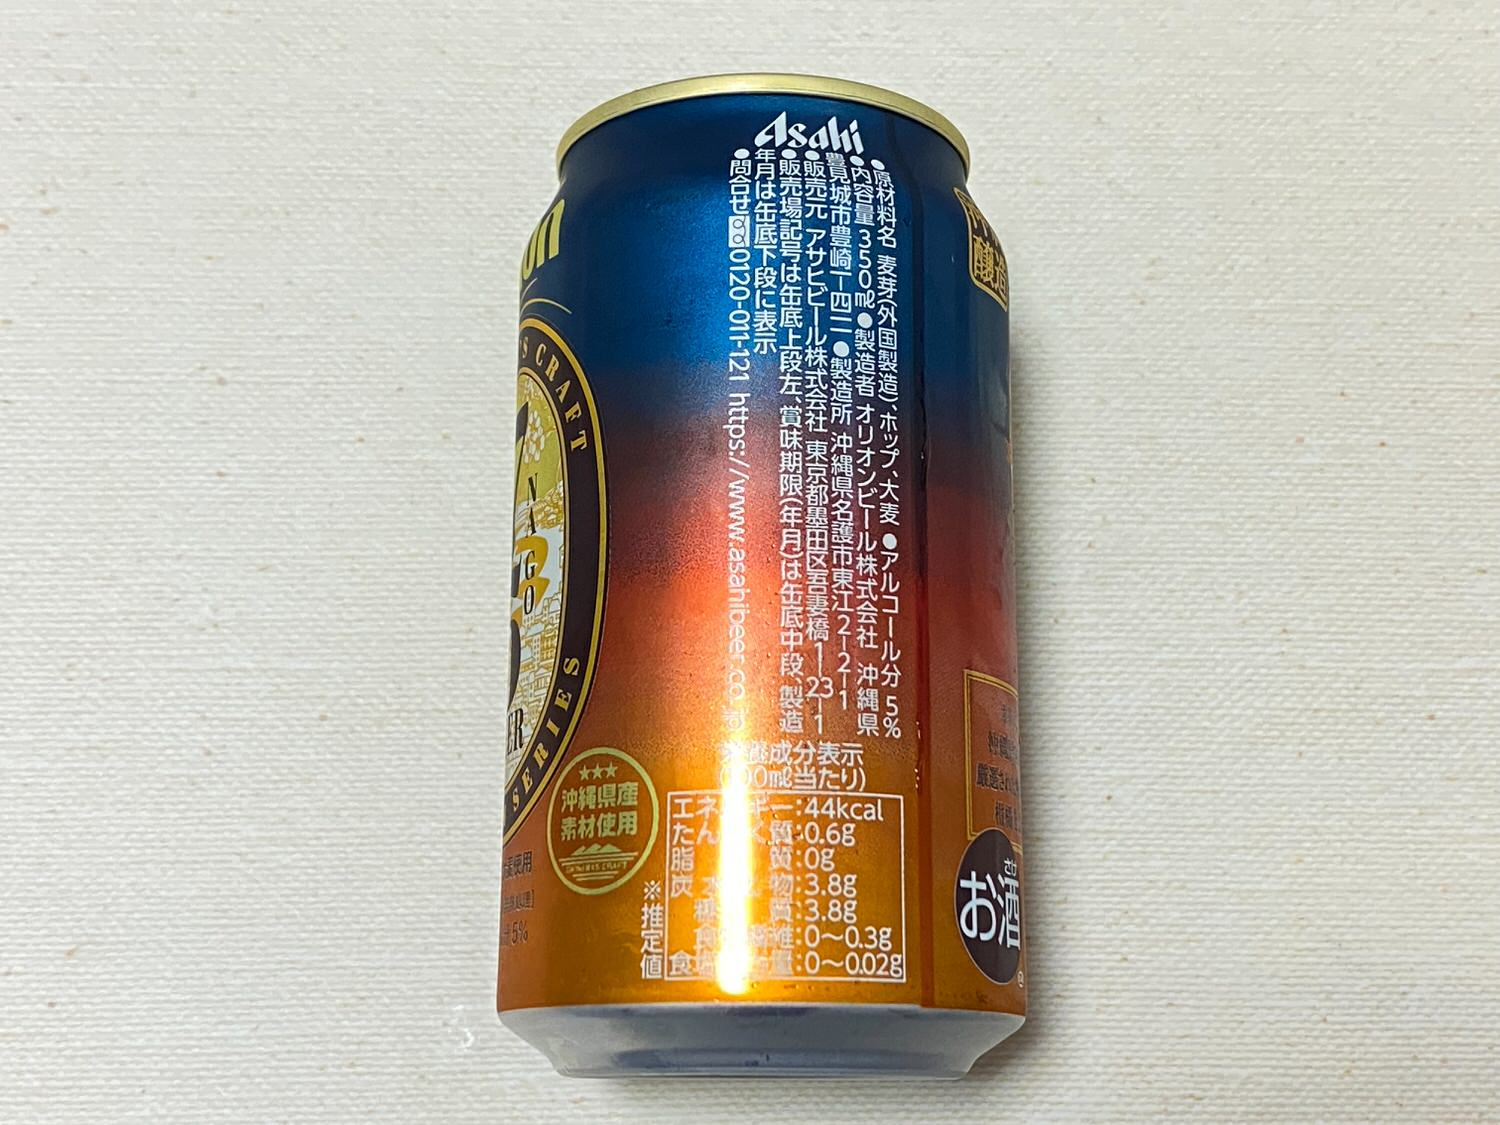 Orion 75 beer 05 04